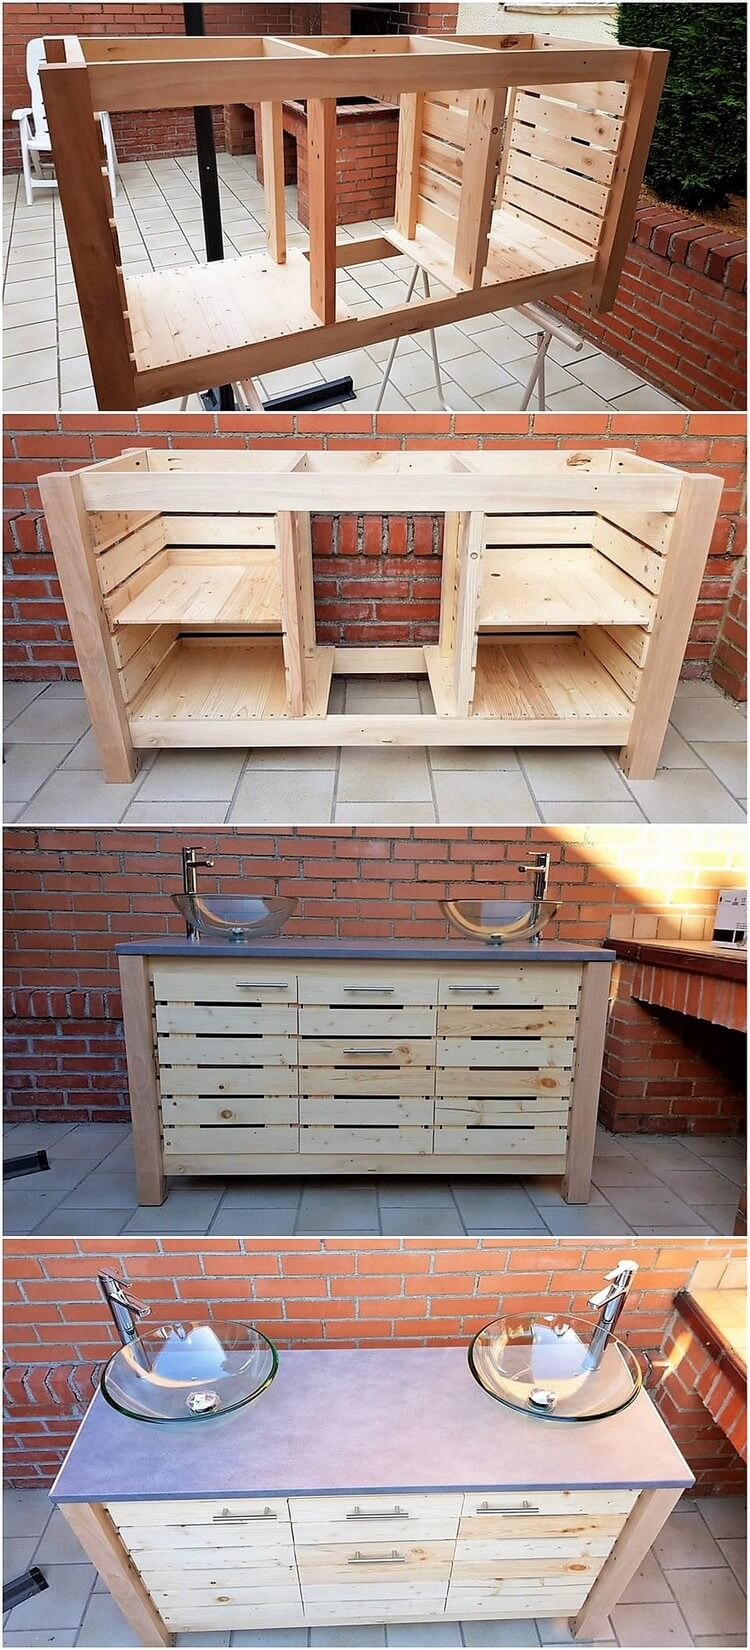 Creative Ways to Reuse Old Wood Pallets